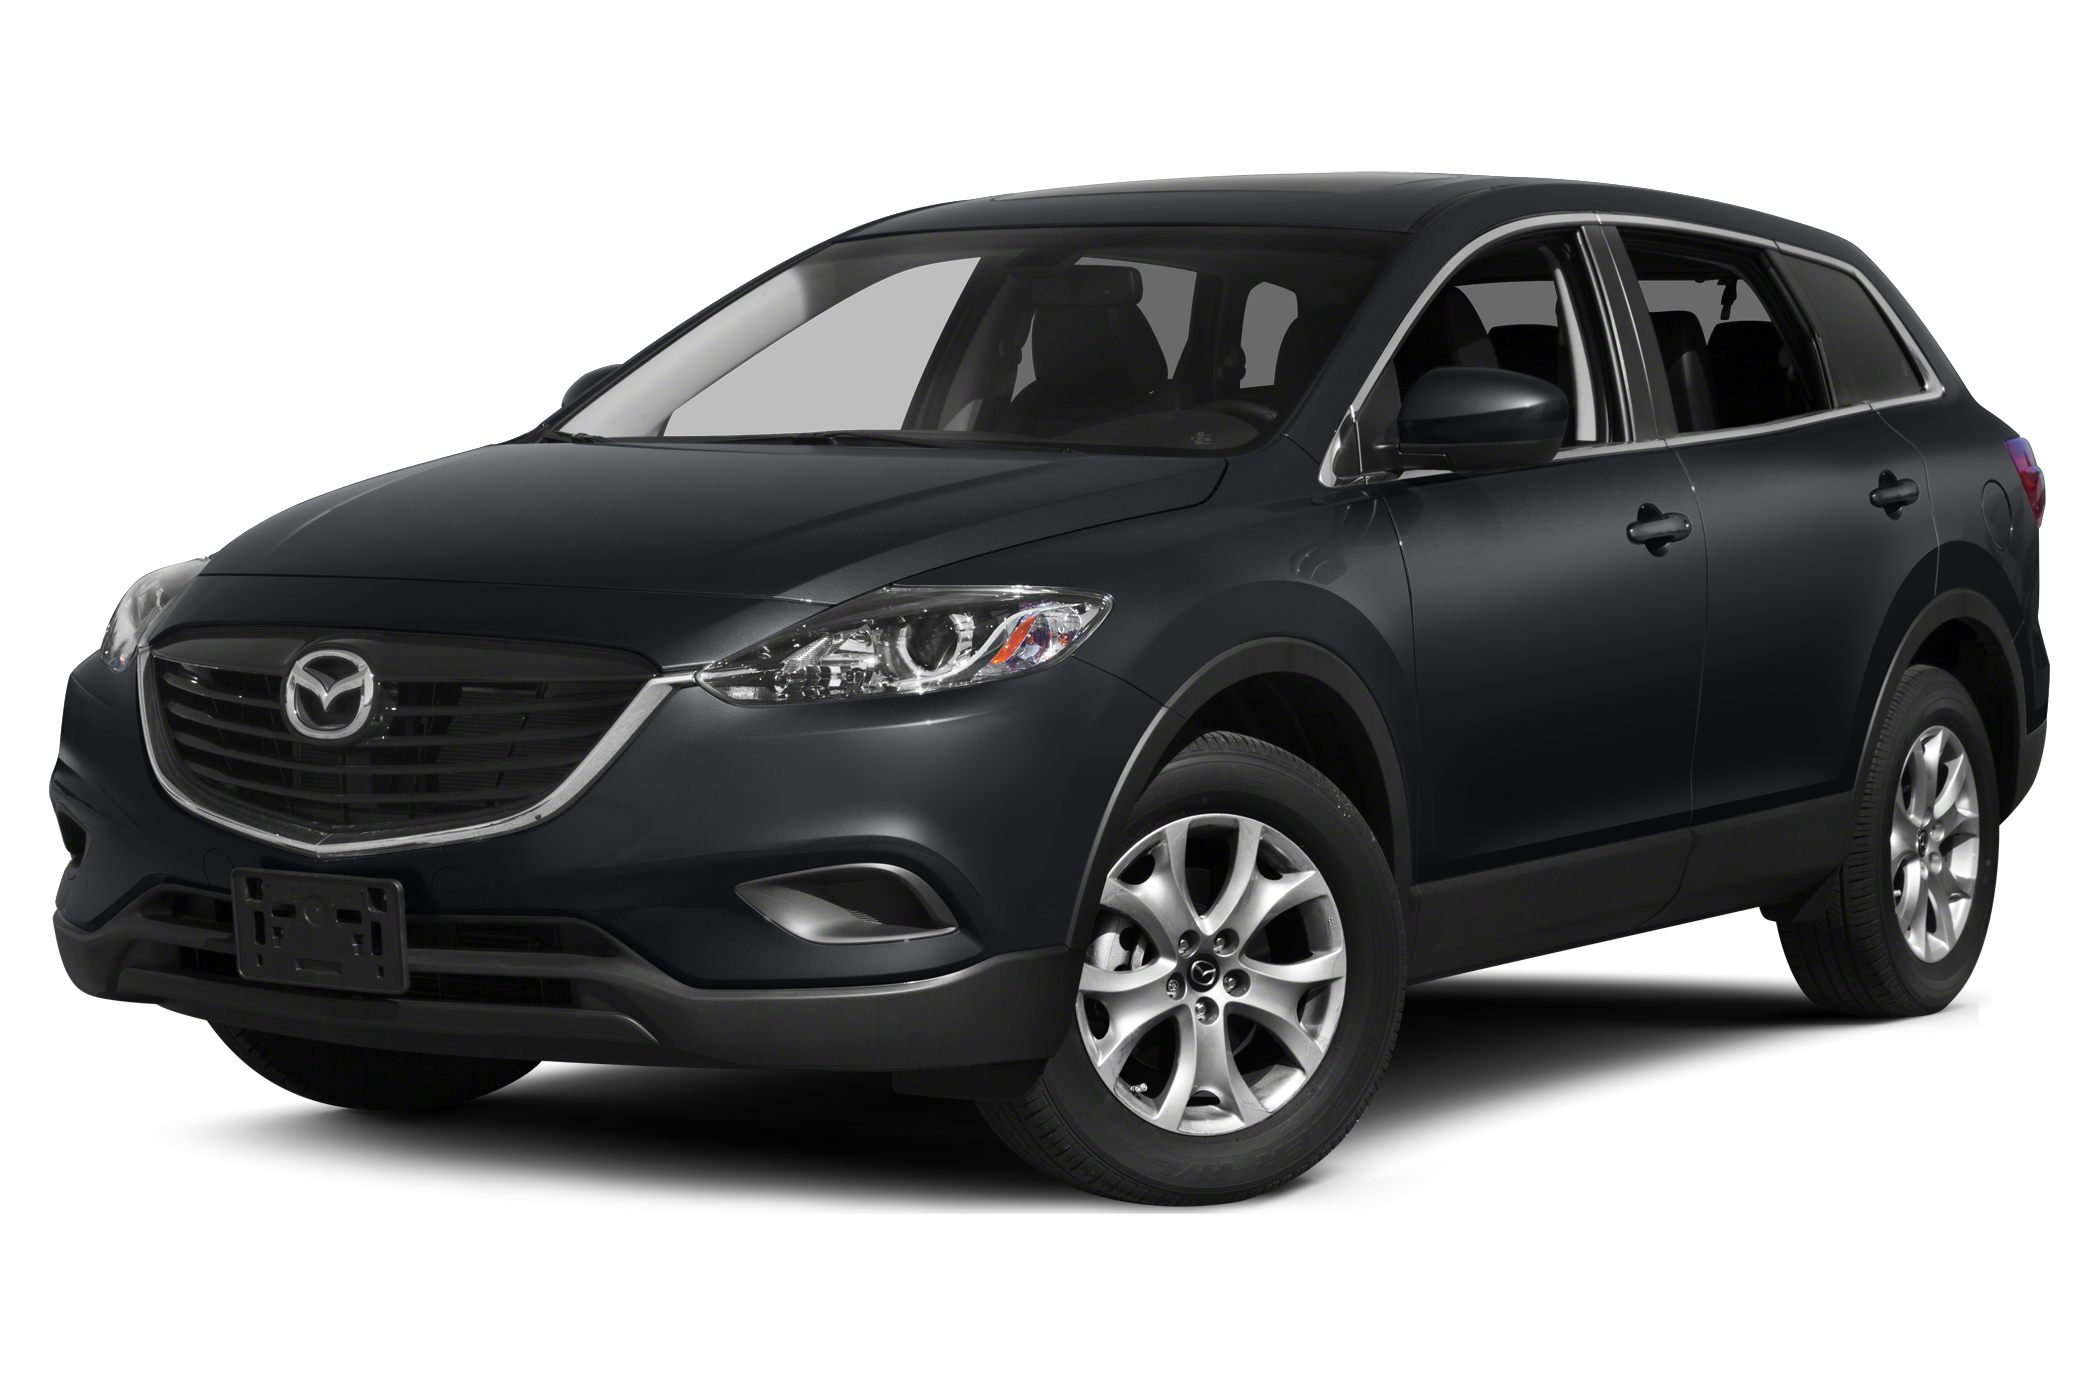 2014 Mazda CX-9 Touring New Price CARFAX One-Owner Clean CARFAX White 2014 Mazda CX-9 Touring A